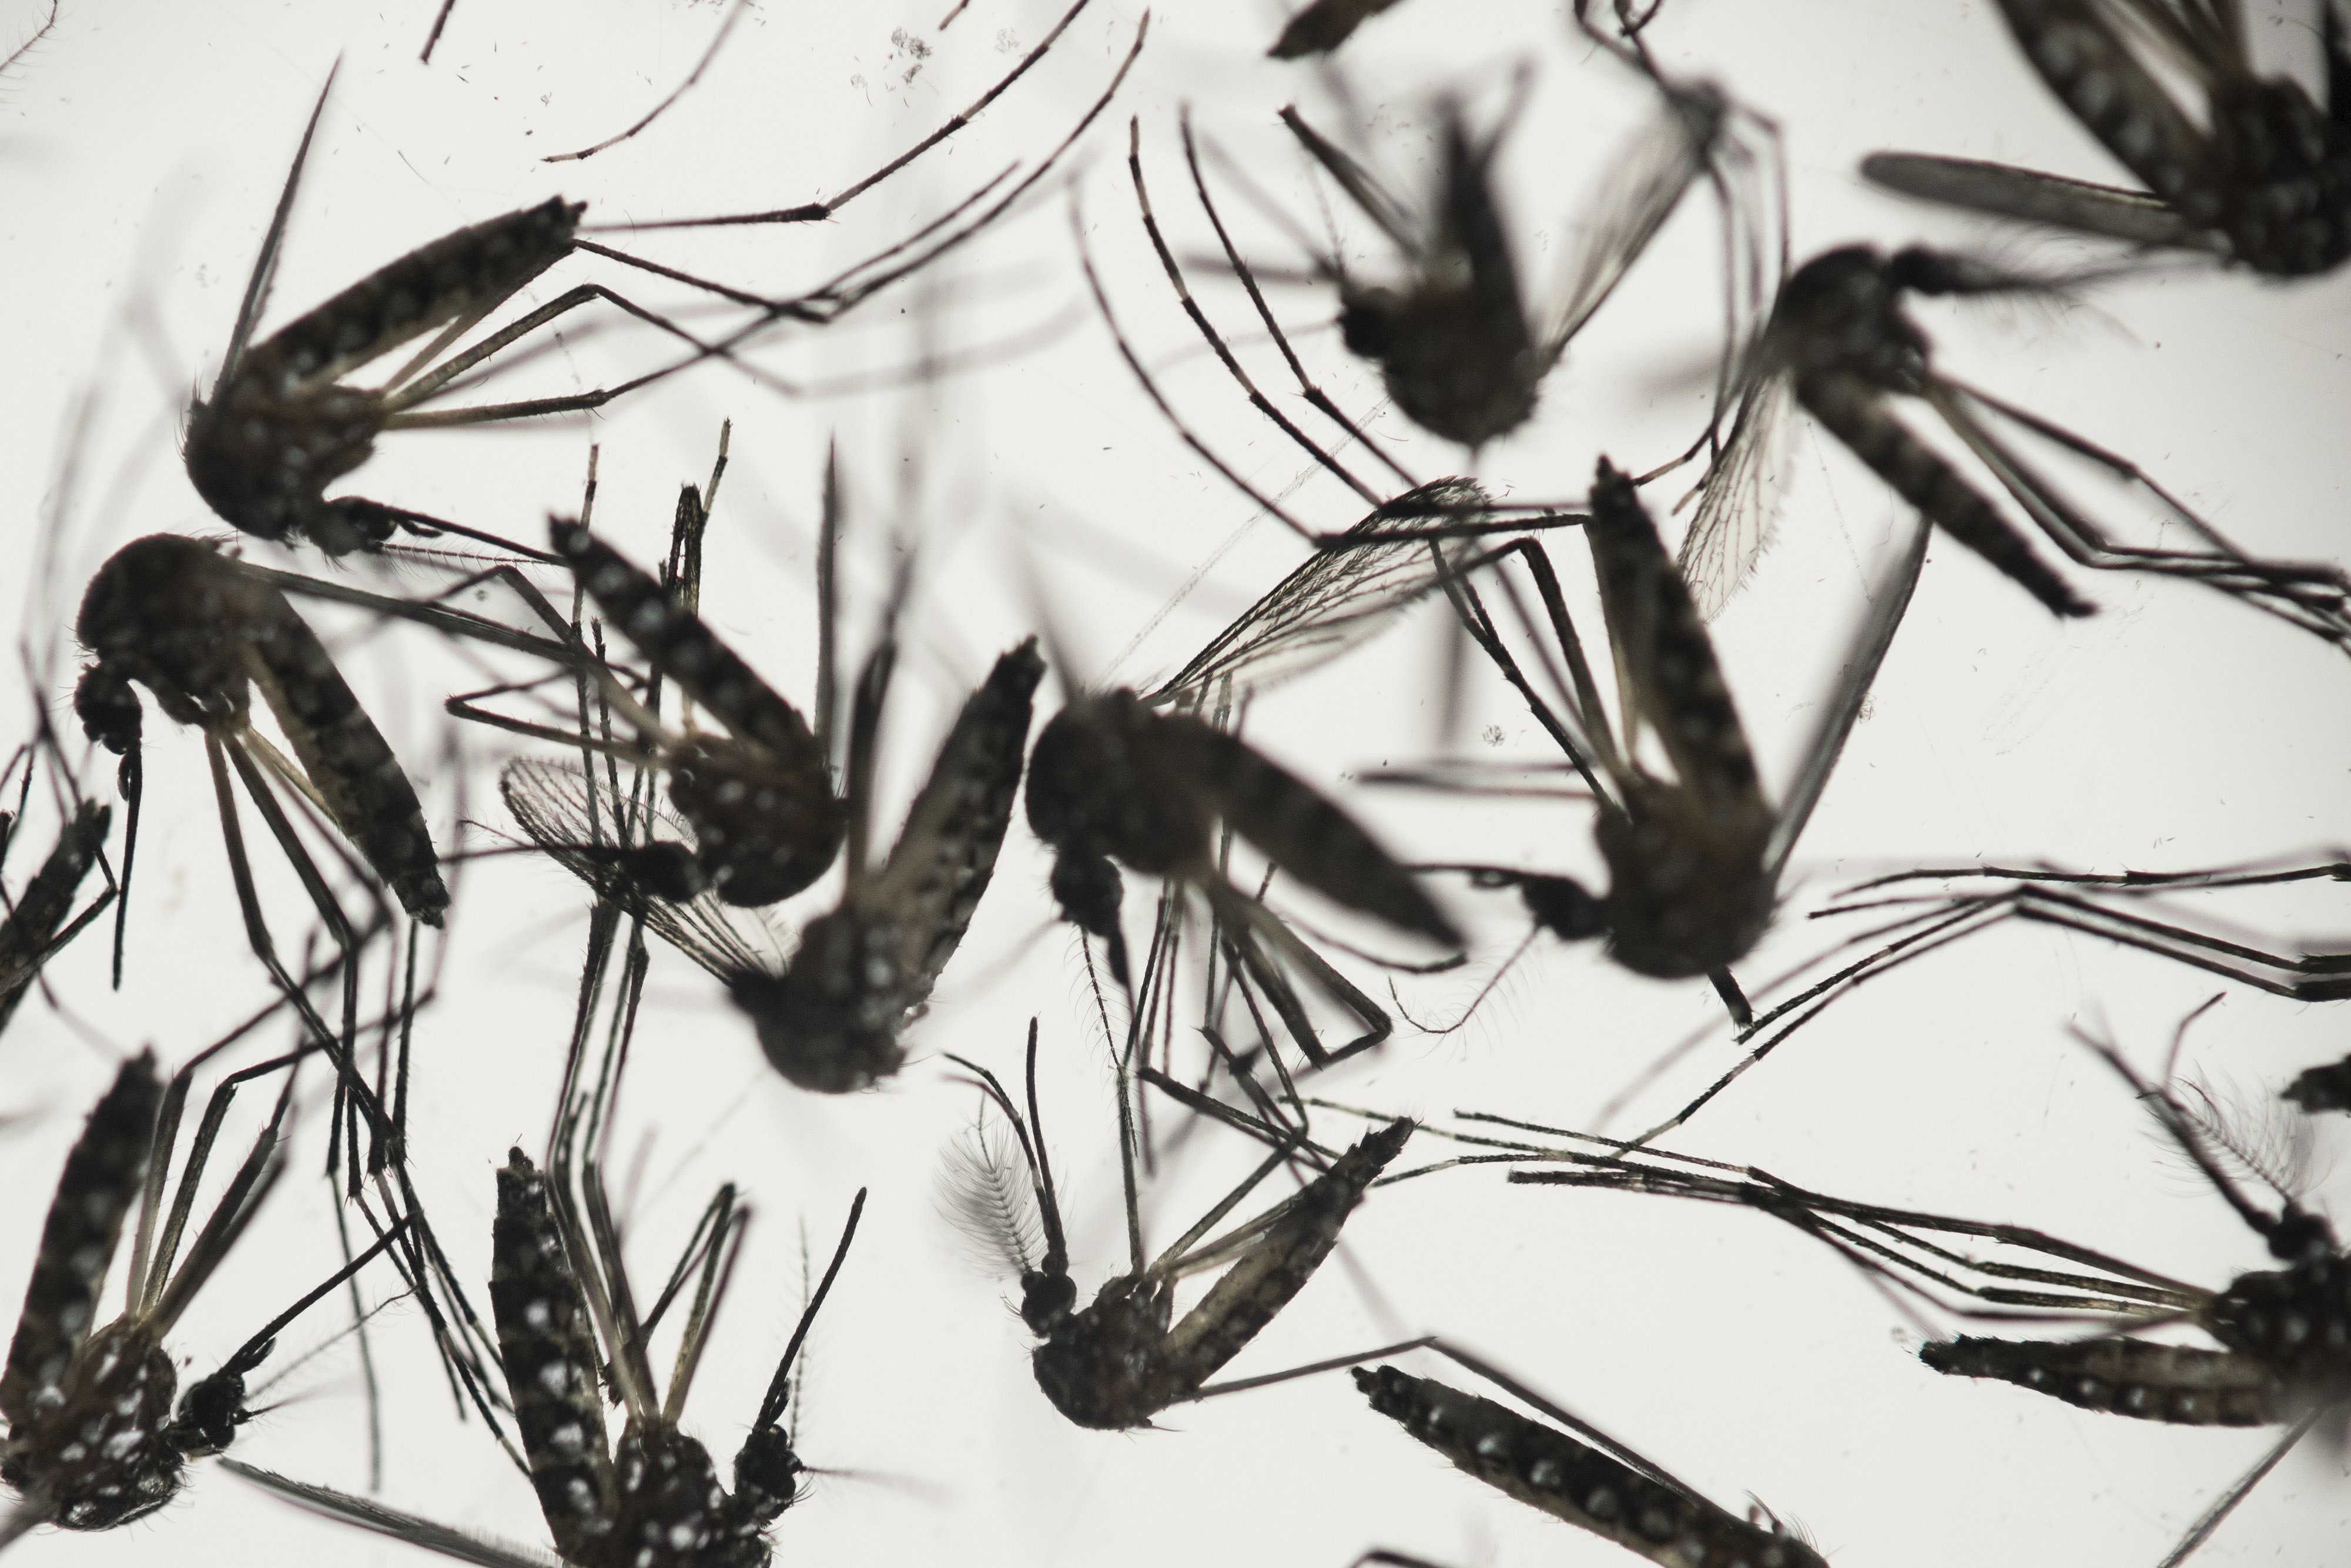 Montgomery Co. health leader warns of local Zika dangers